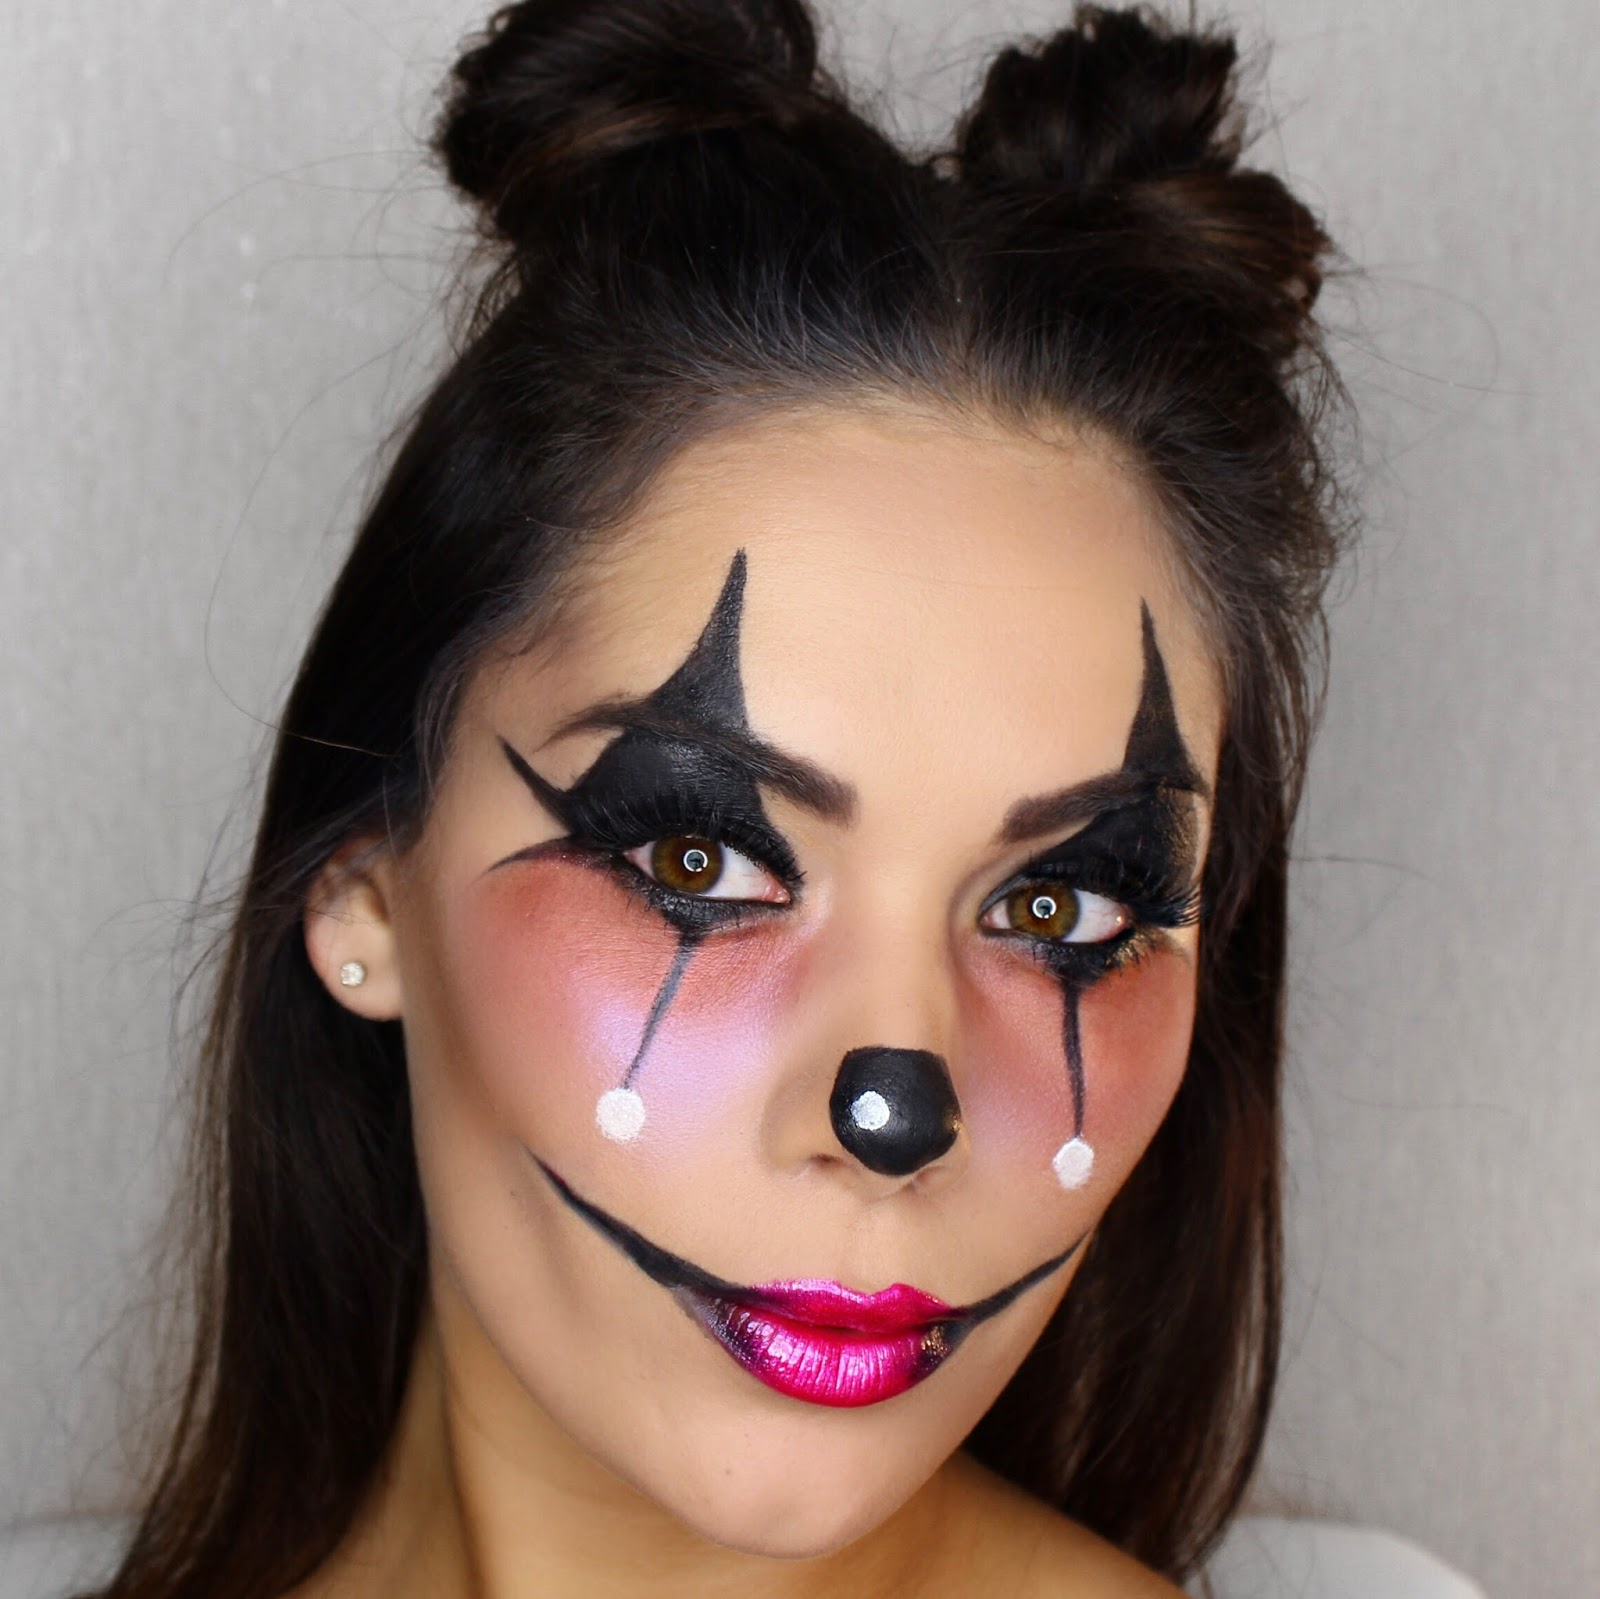 CUTE CLOWN HALLOWEEN MAKEUP LOOK